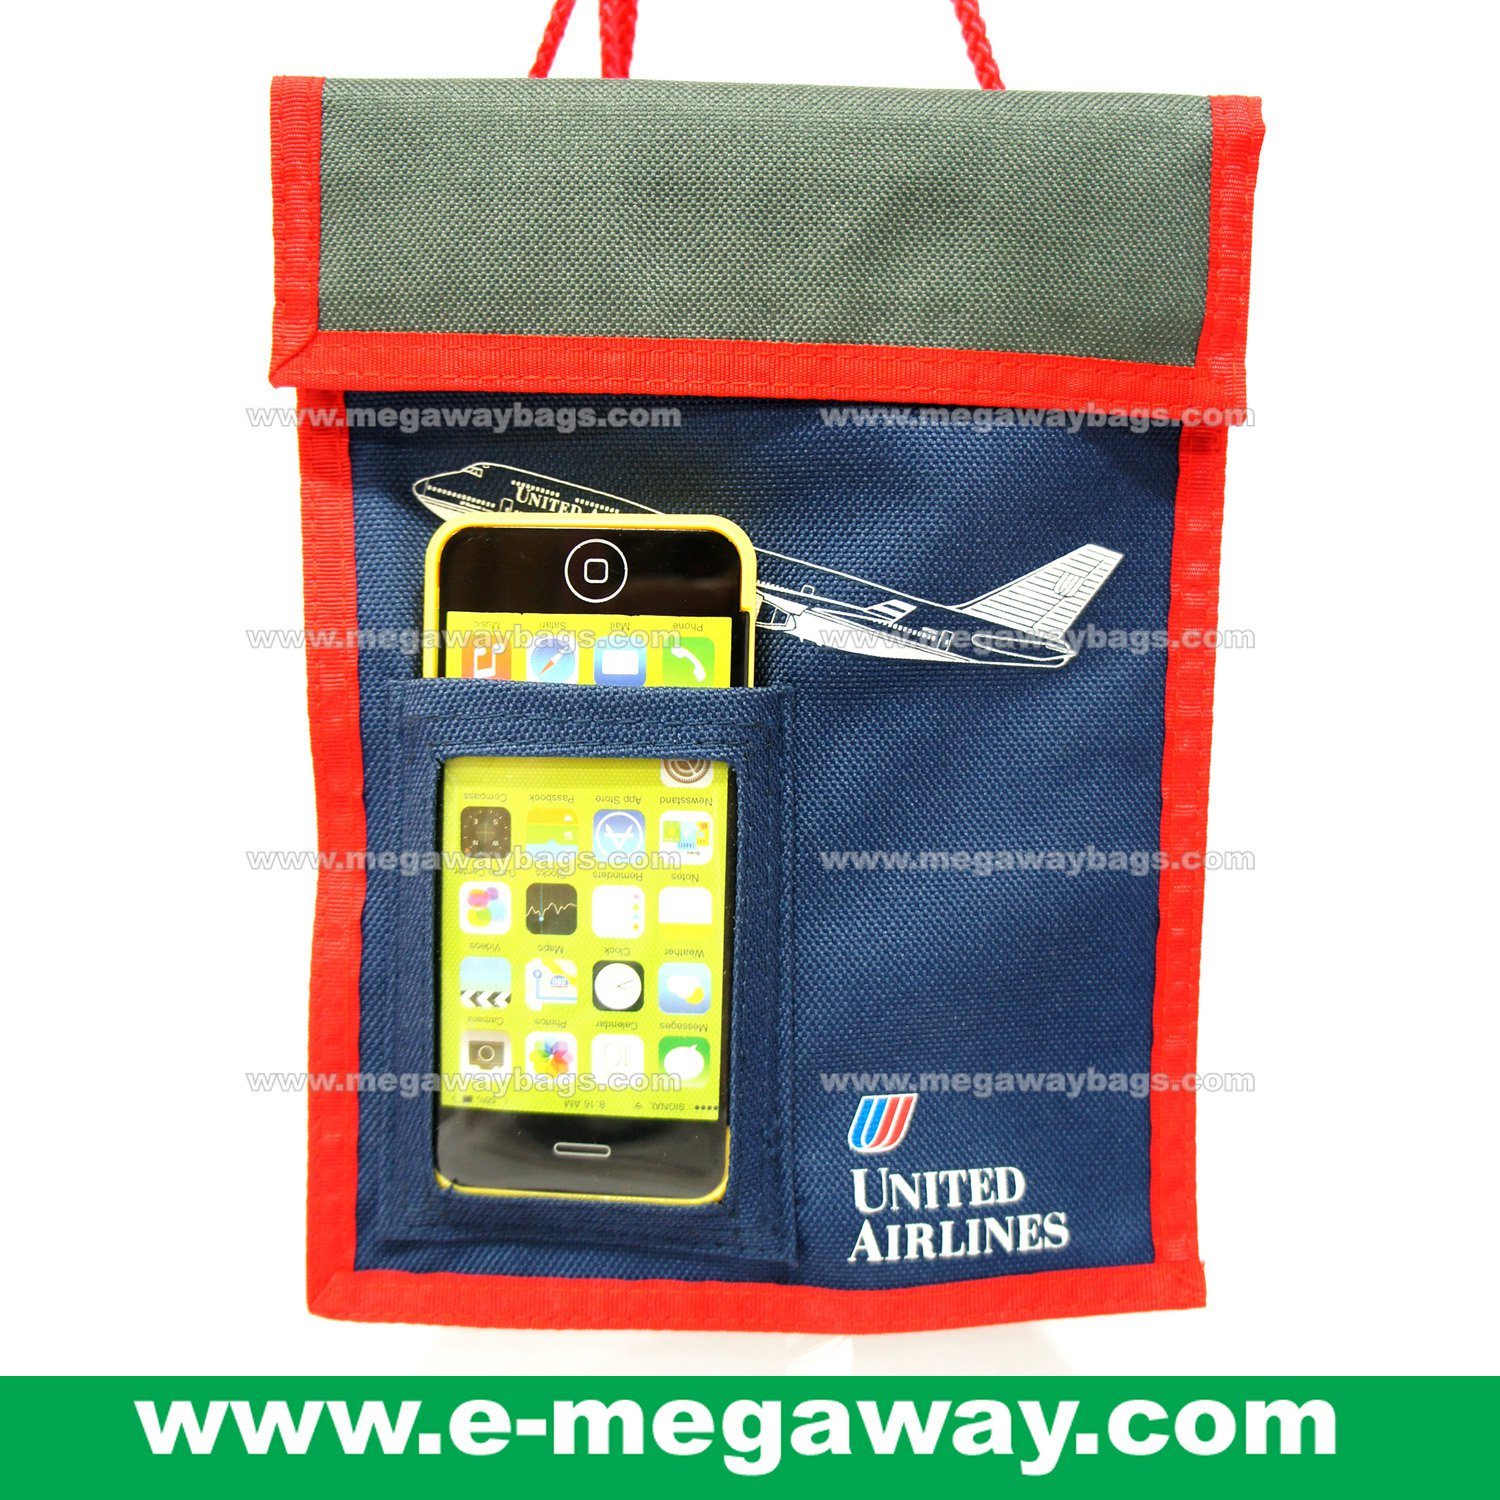 United Airline Travel Wallet Bag Money Tickets Credit Card Organizer MegawayBags #CC-0643